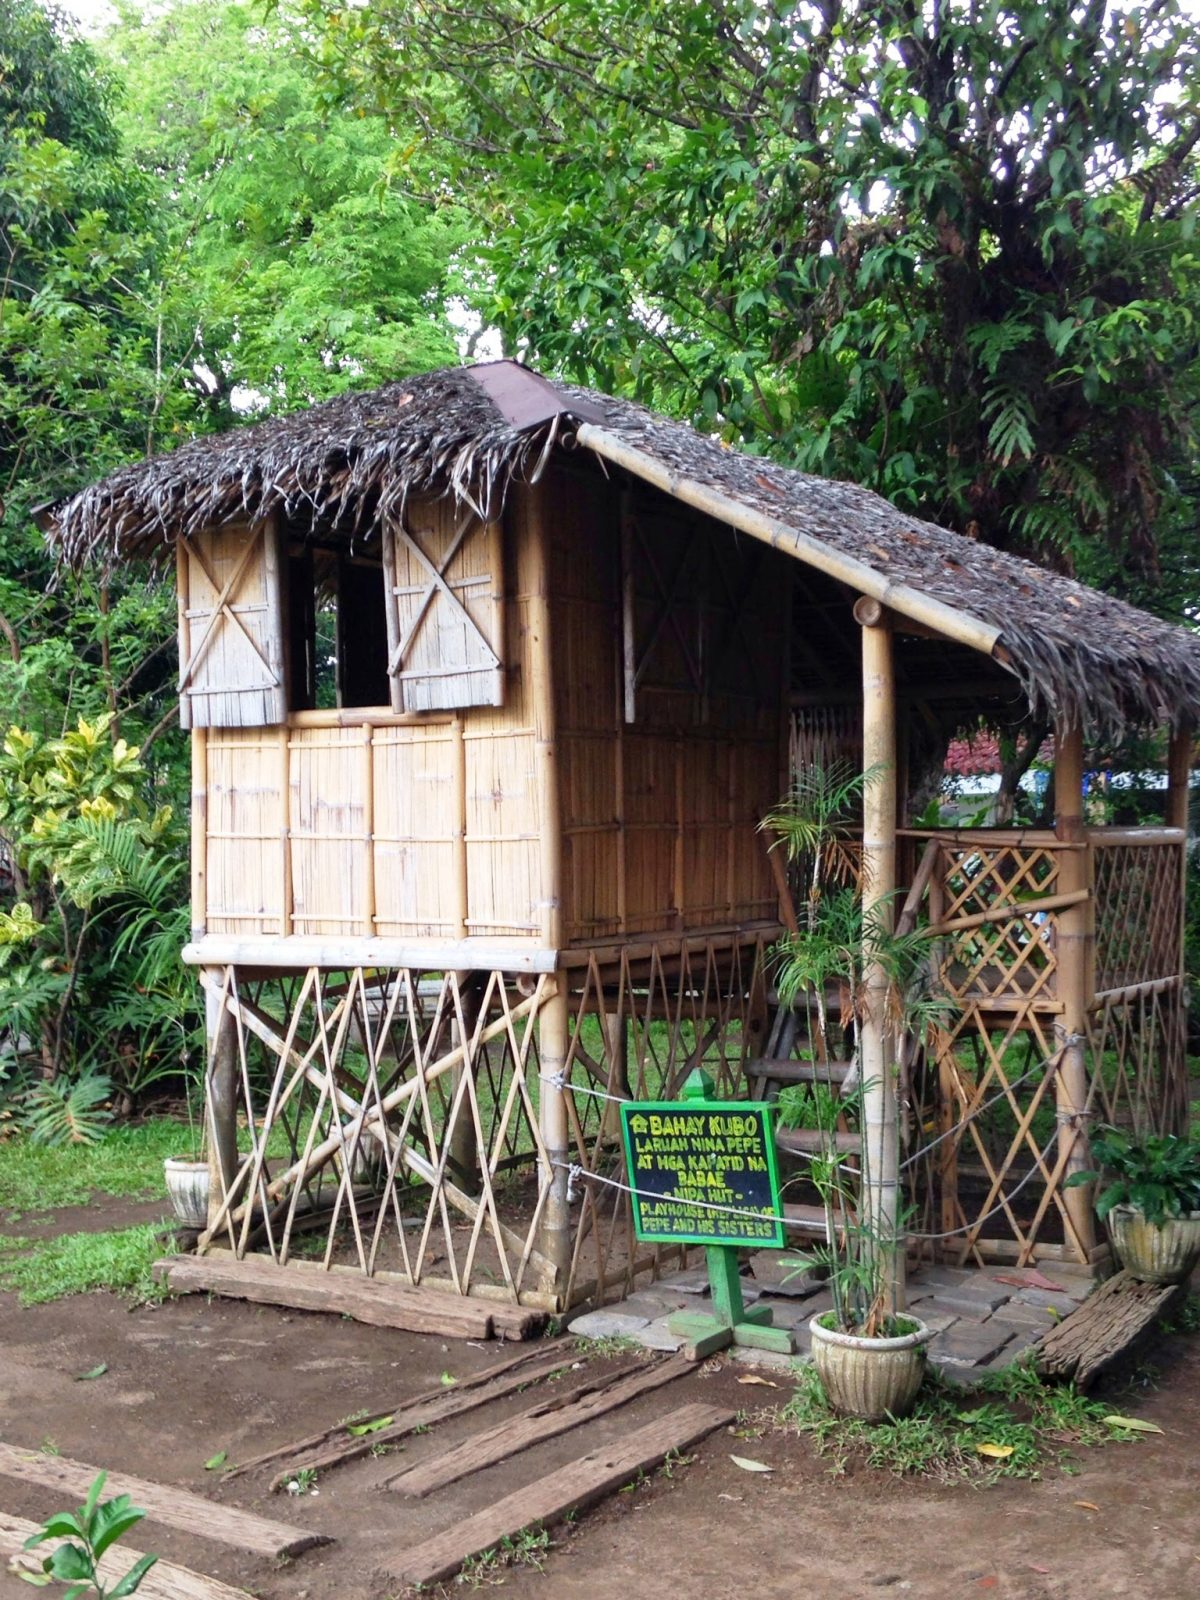 A replica of Pepe's nipa hut. Photo by Ching Dee.